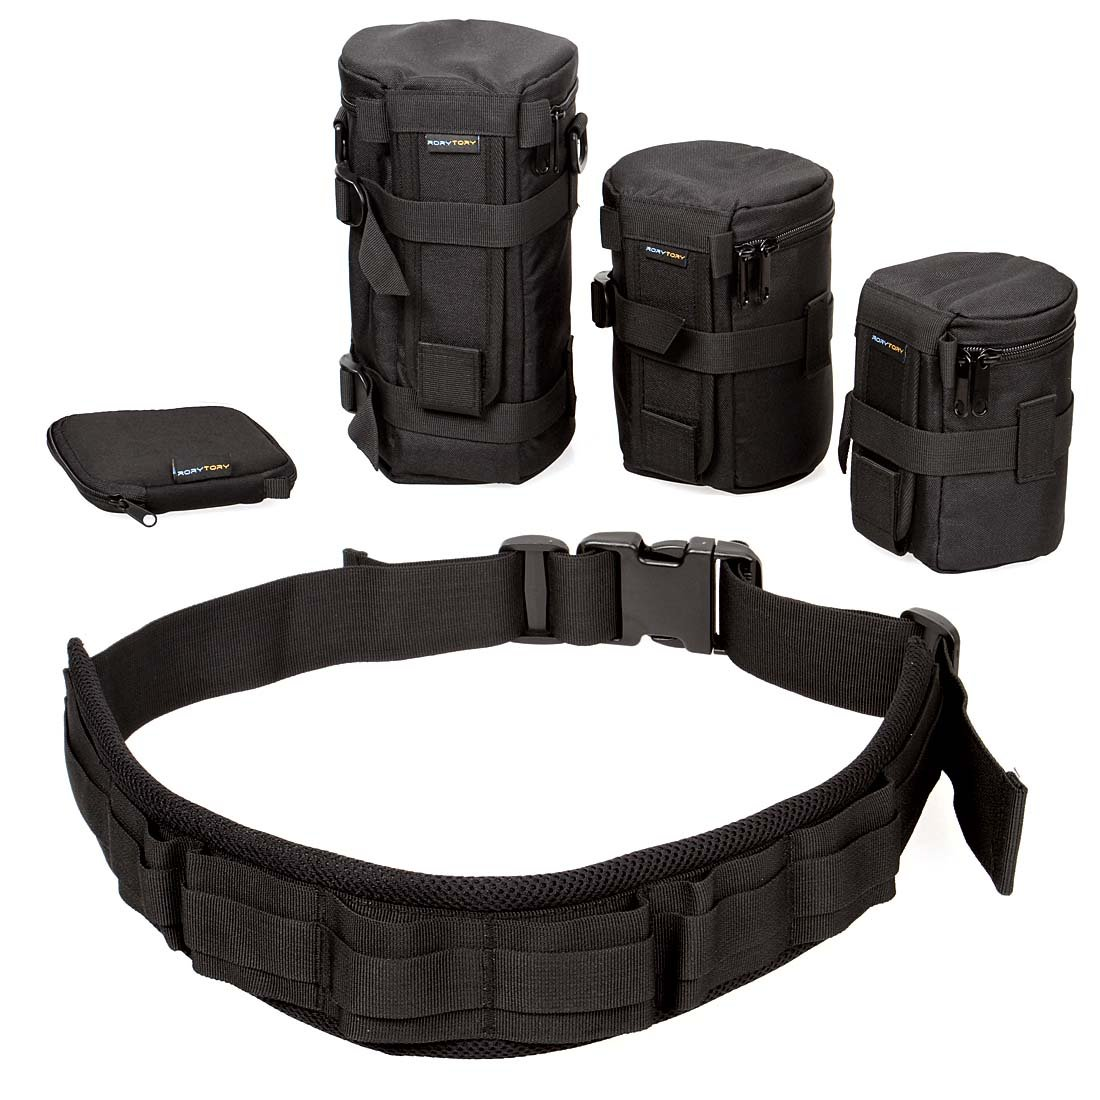 RoryTory 5pc Camera Organizer Case Bag Lens Organizer & Protector SD Storage Photo Belt System, for Travel & Backpacking, Convenient & Complete Camera Belt for Casual or Formal Photography Events by RoryTory